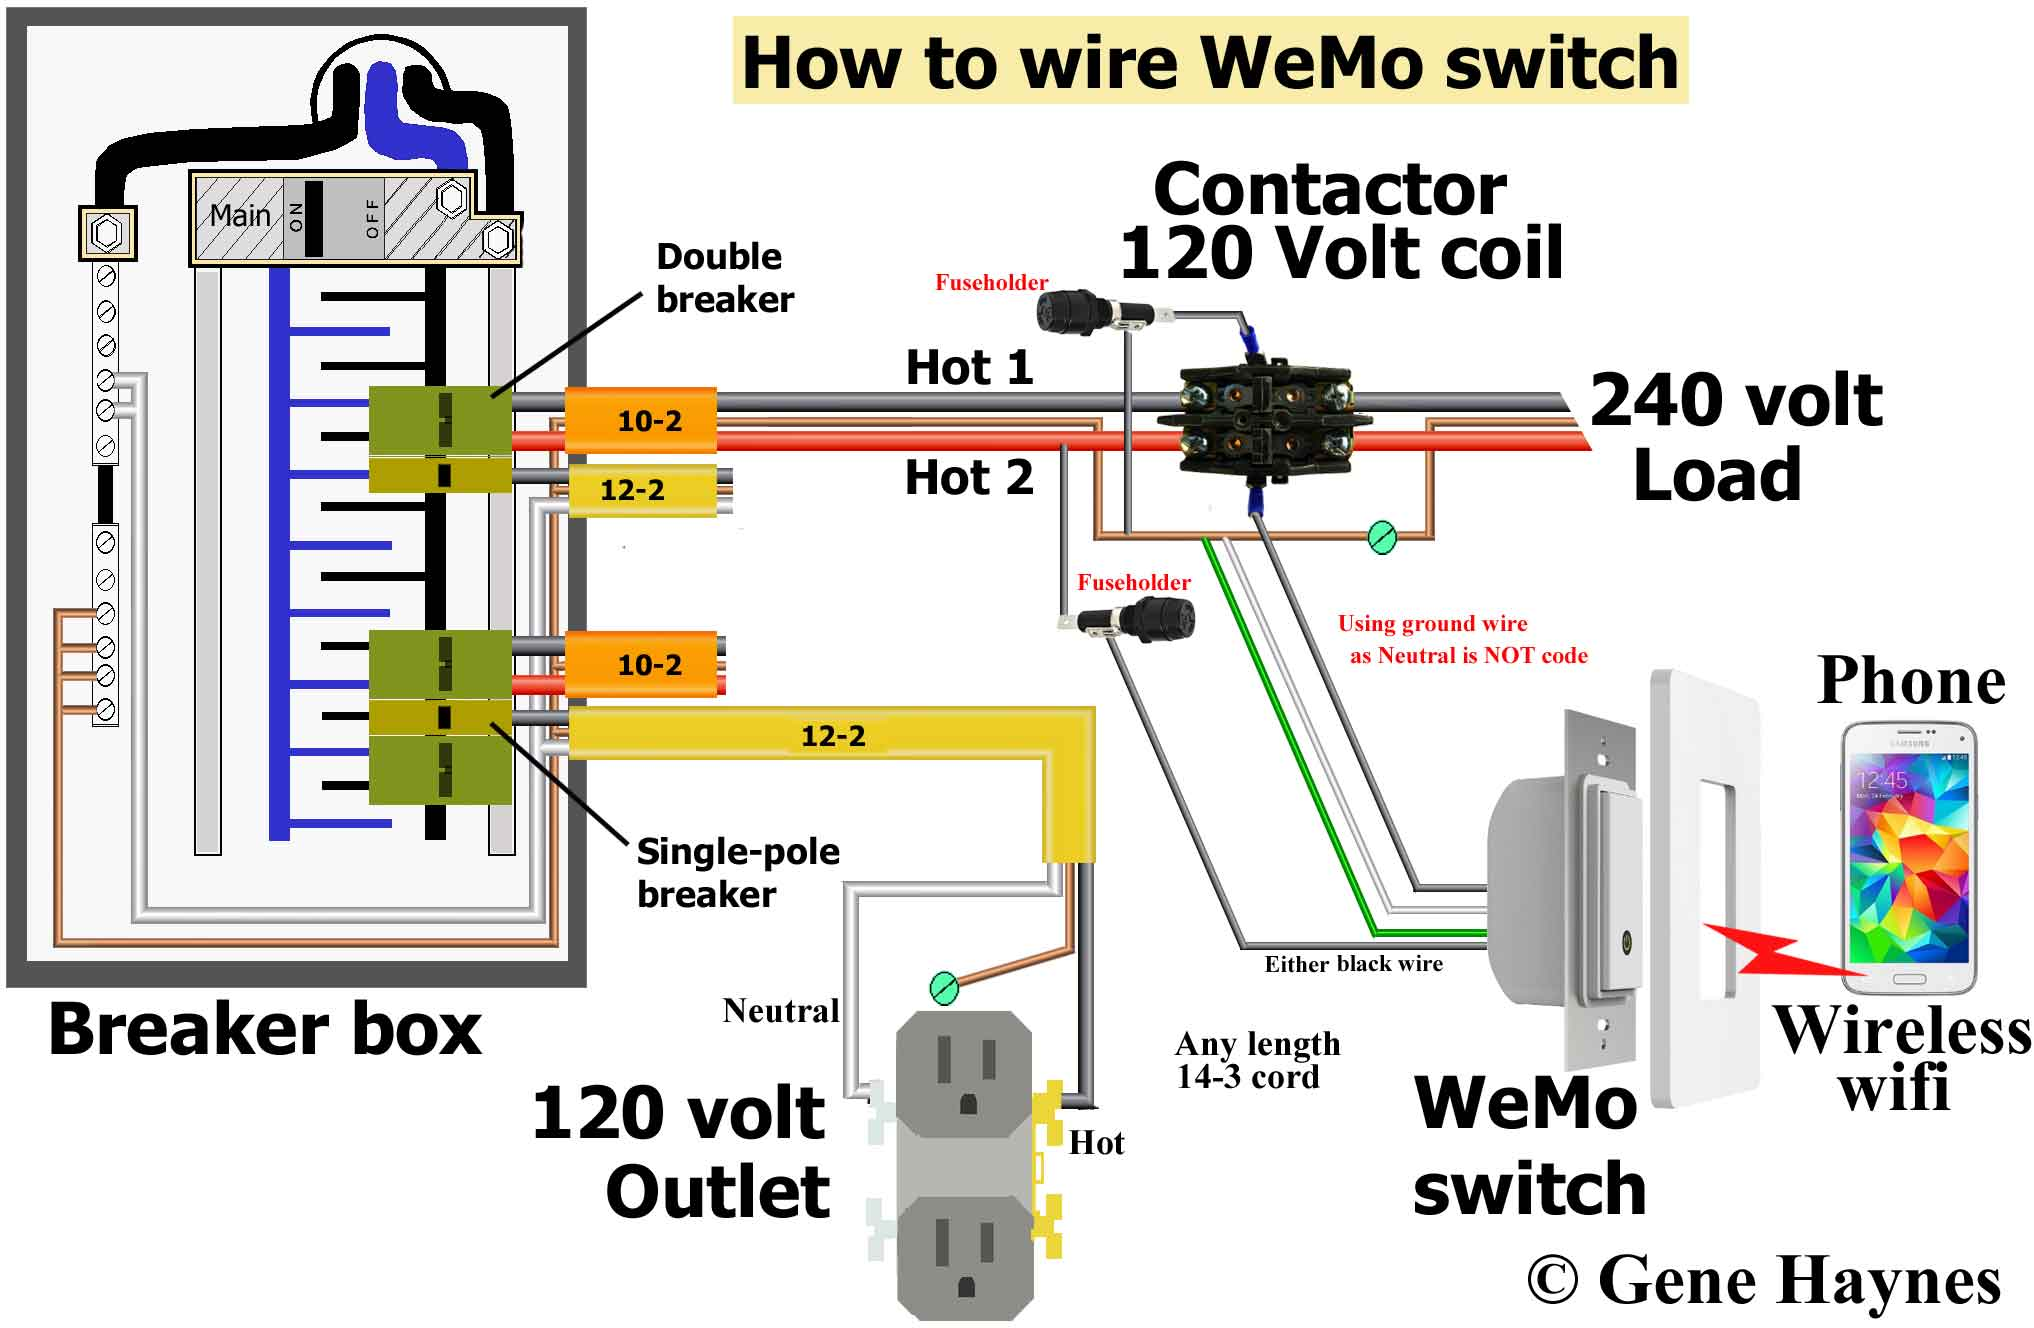 Use wiring diagram shown above. Override WeMo switch